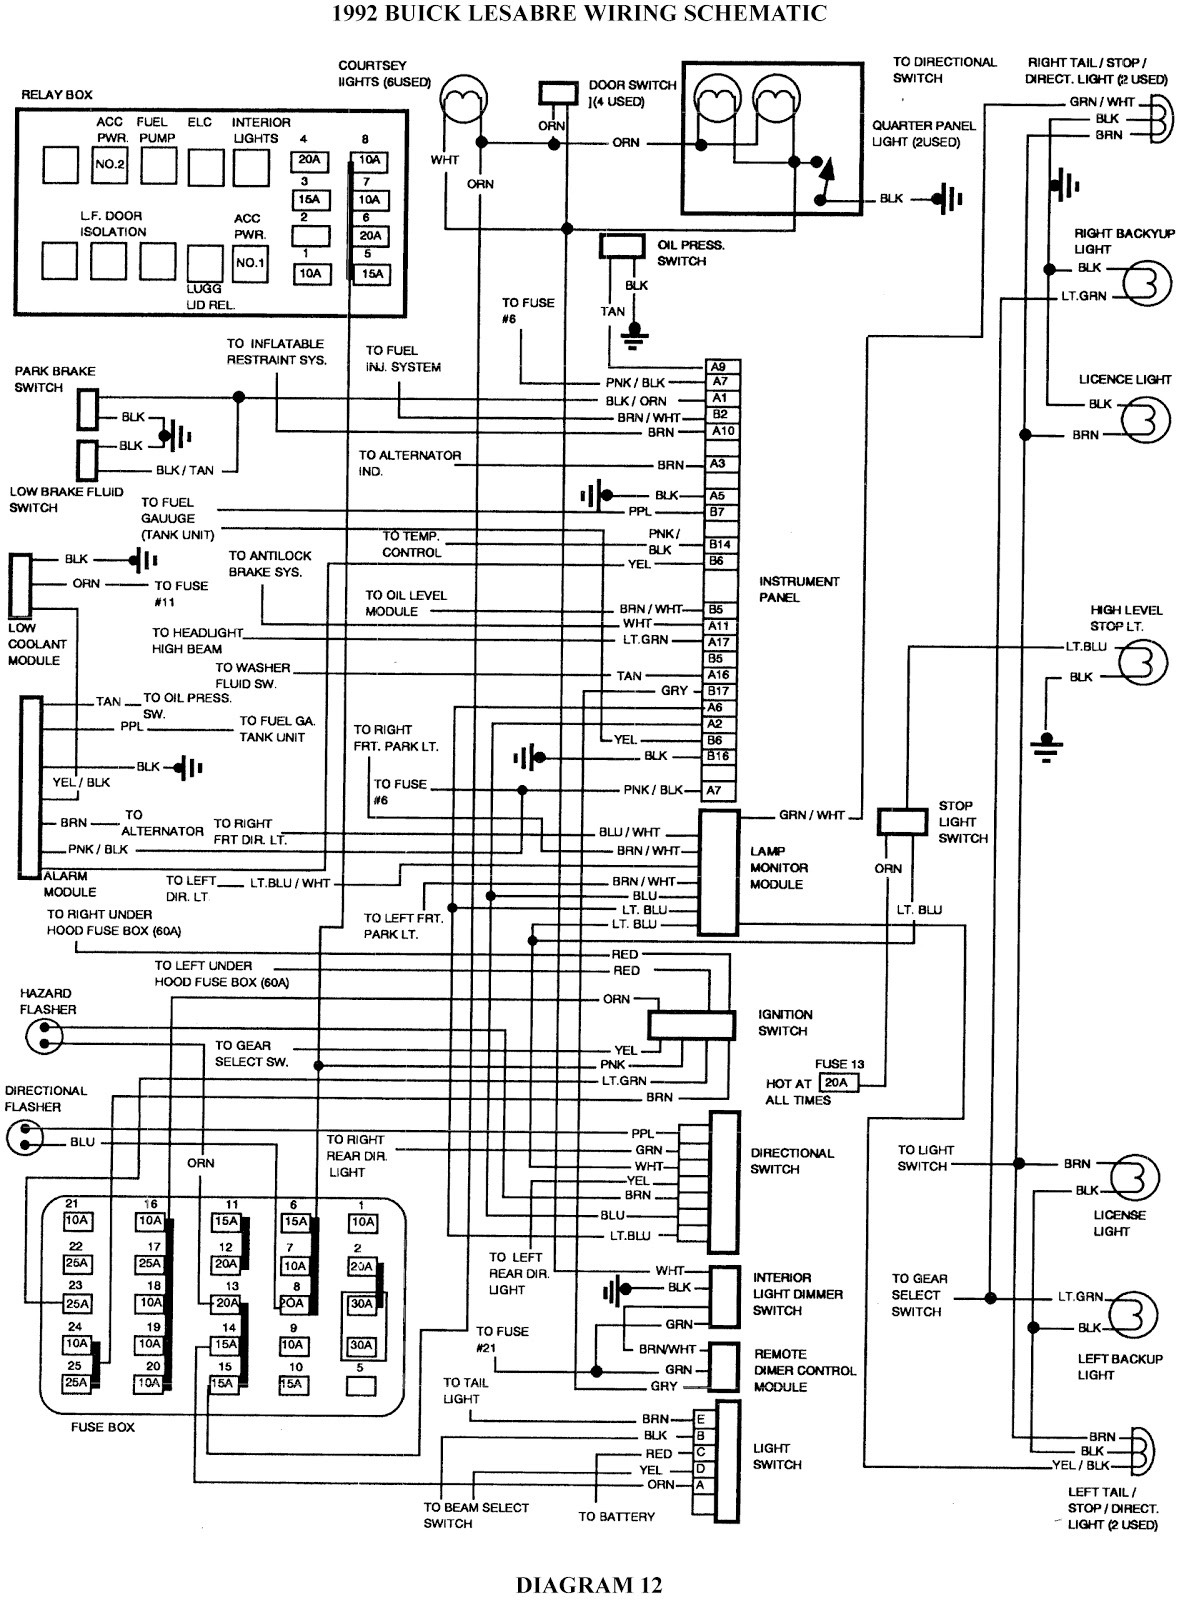 radiator fan wiring diagram manual corolla 1995